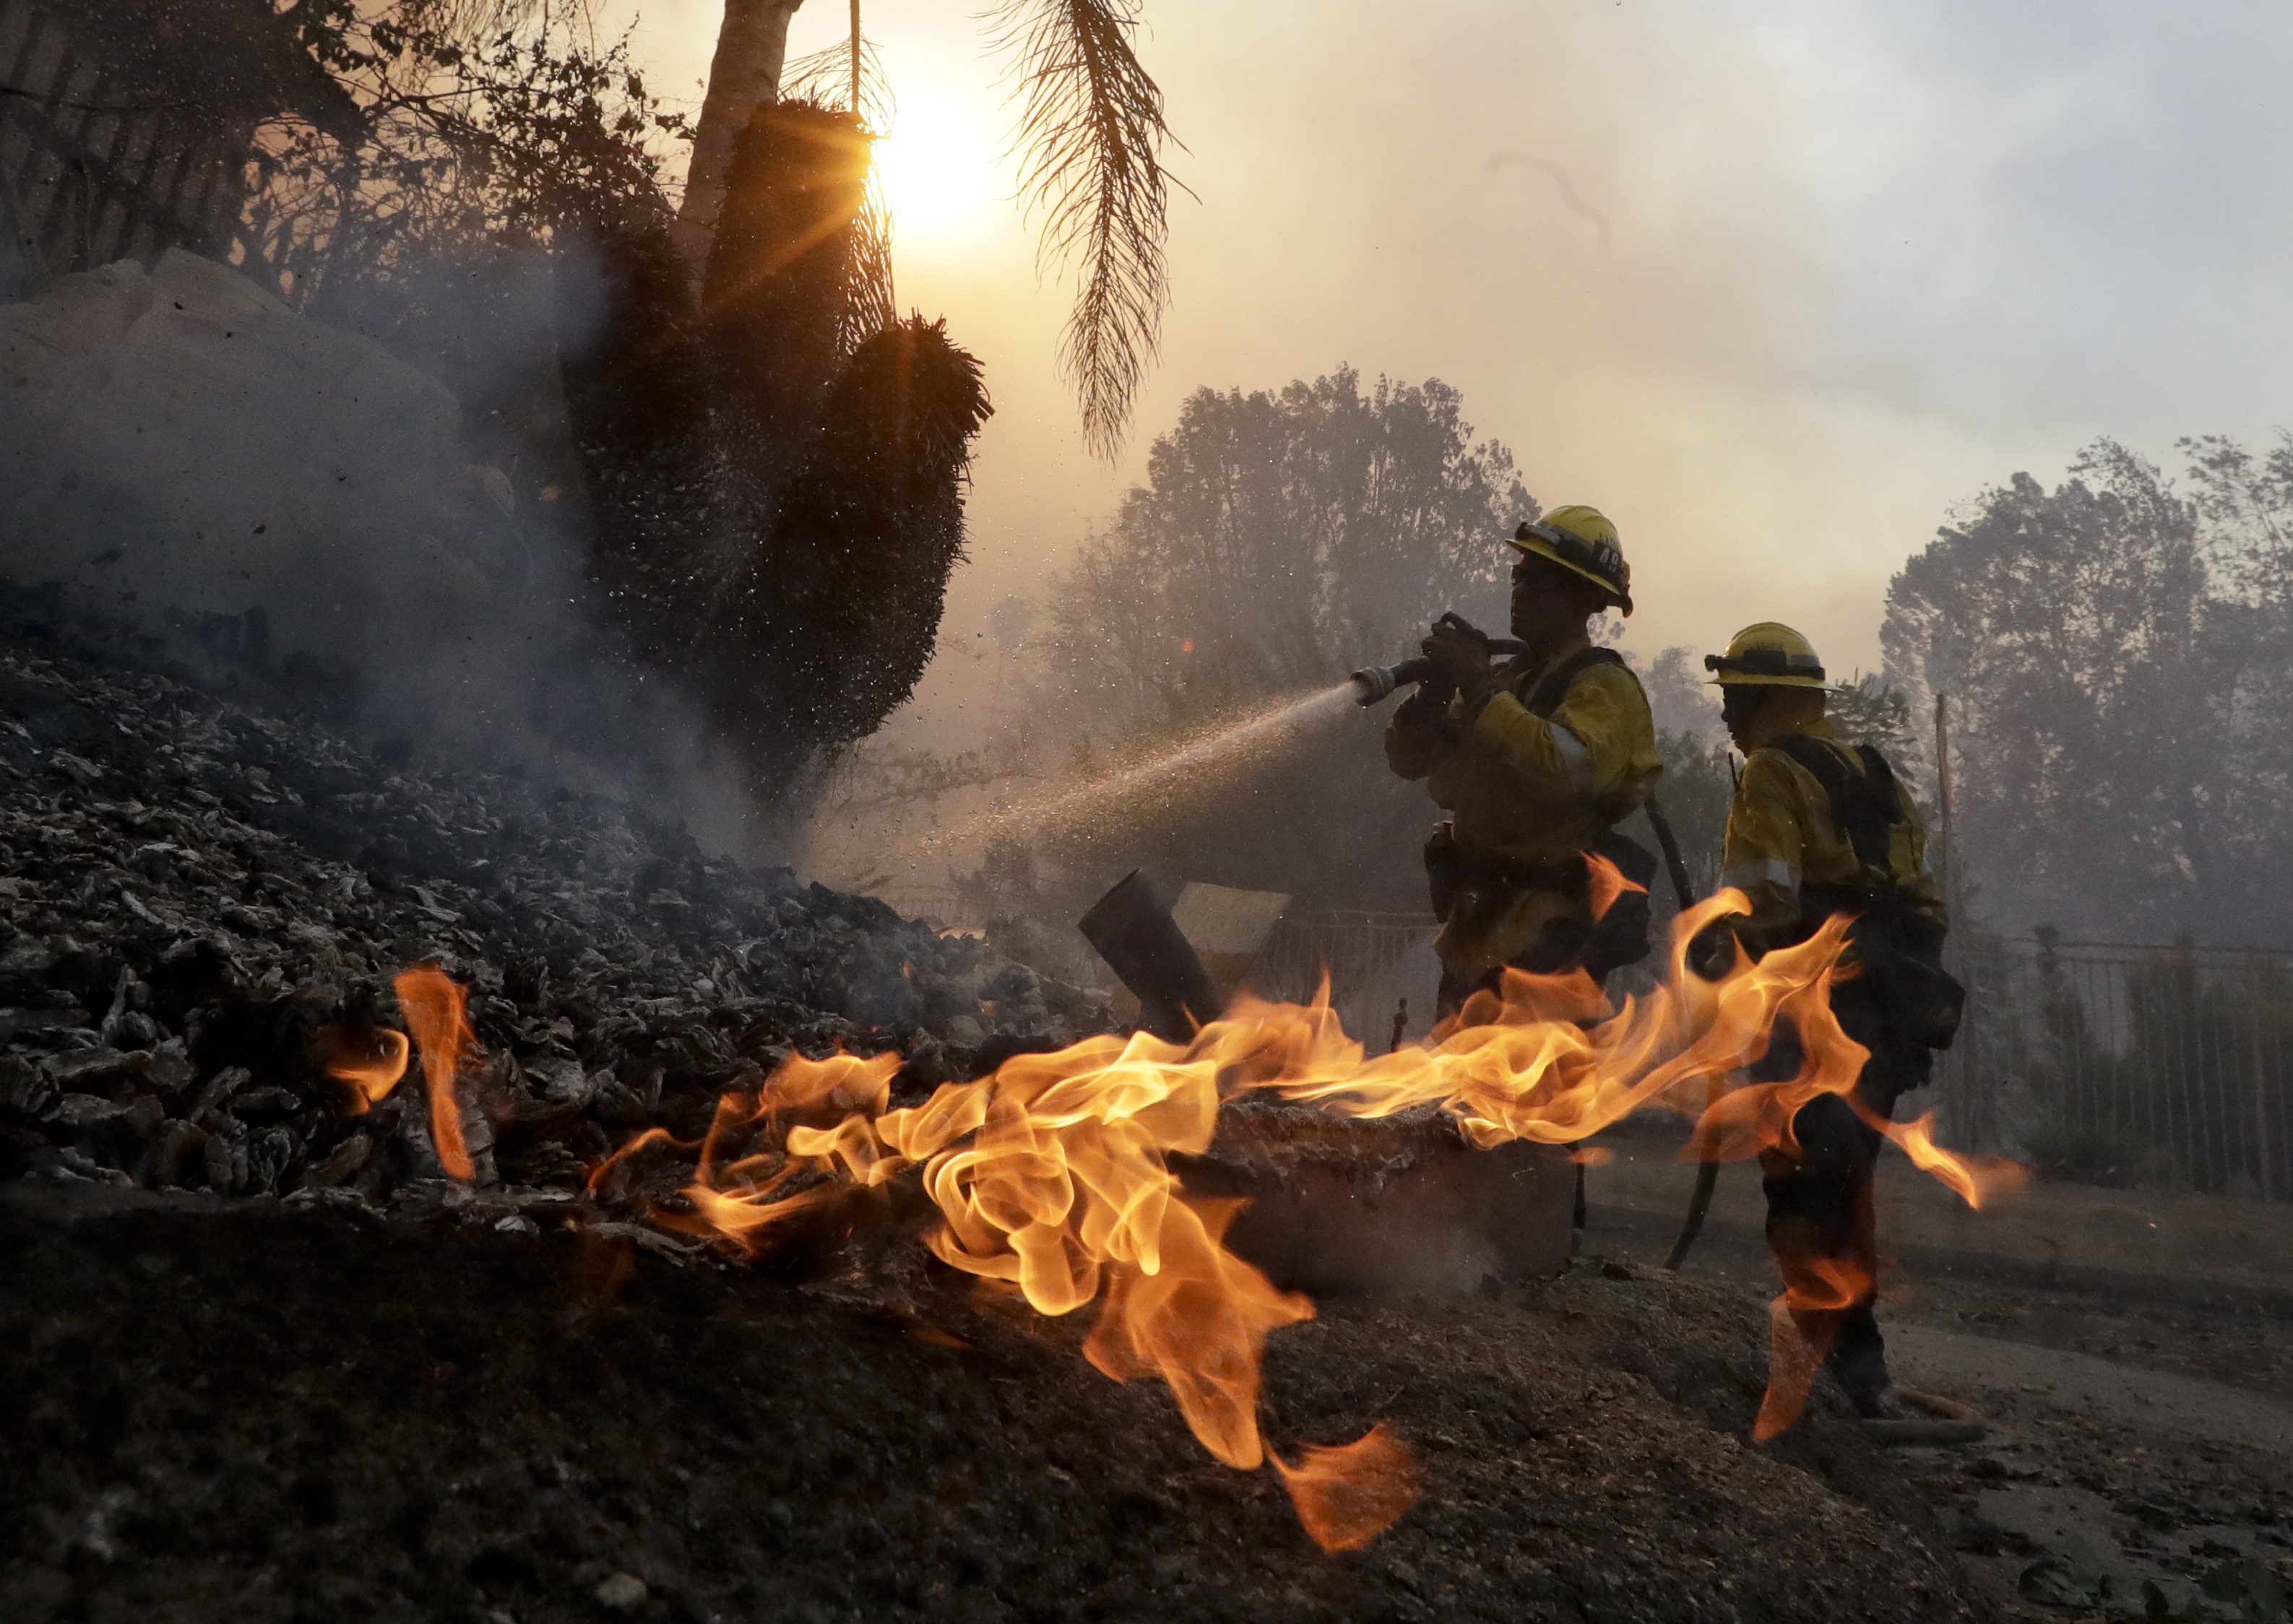 Los Angeles County firefighters battle a wildfire in the Lake View Terrace area of Los Angeles, Tuesday, Dec. 5, 2017. (AP Photo/Chris Carlson)